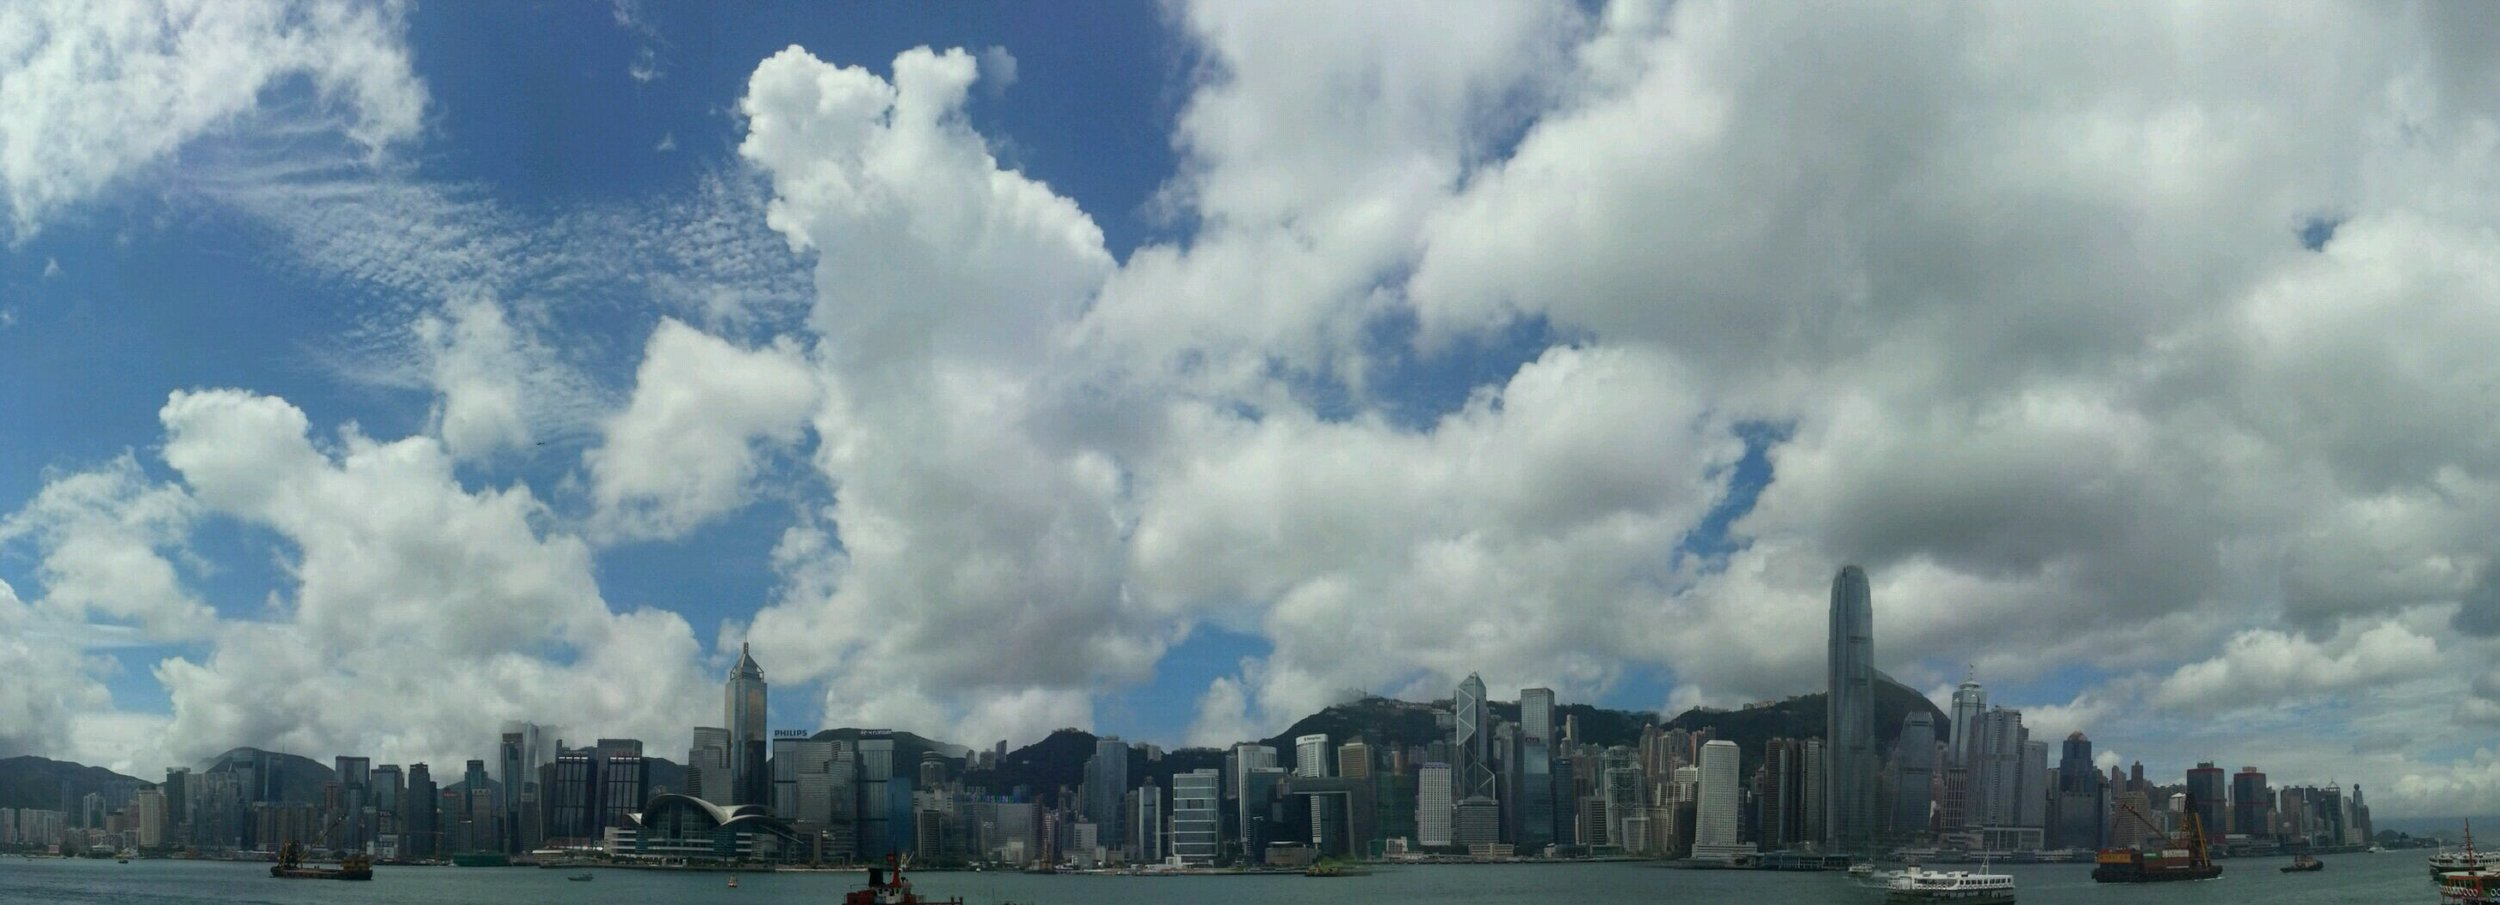 Kowloon skyline